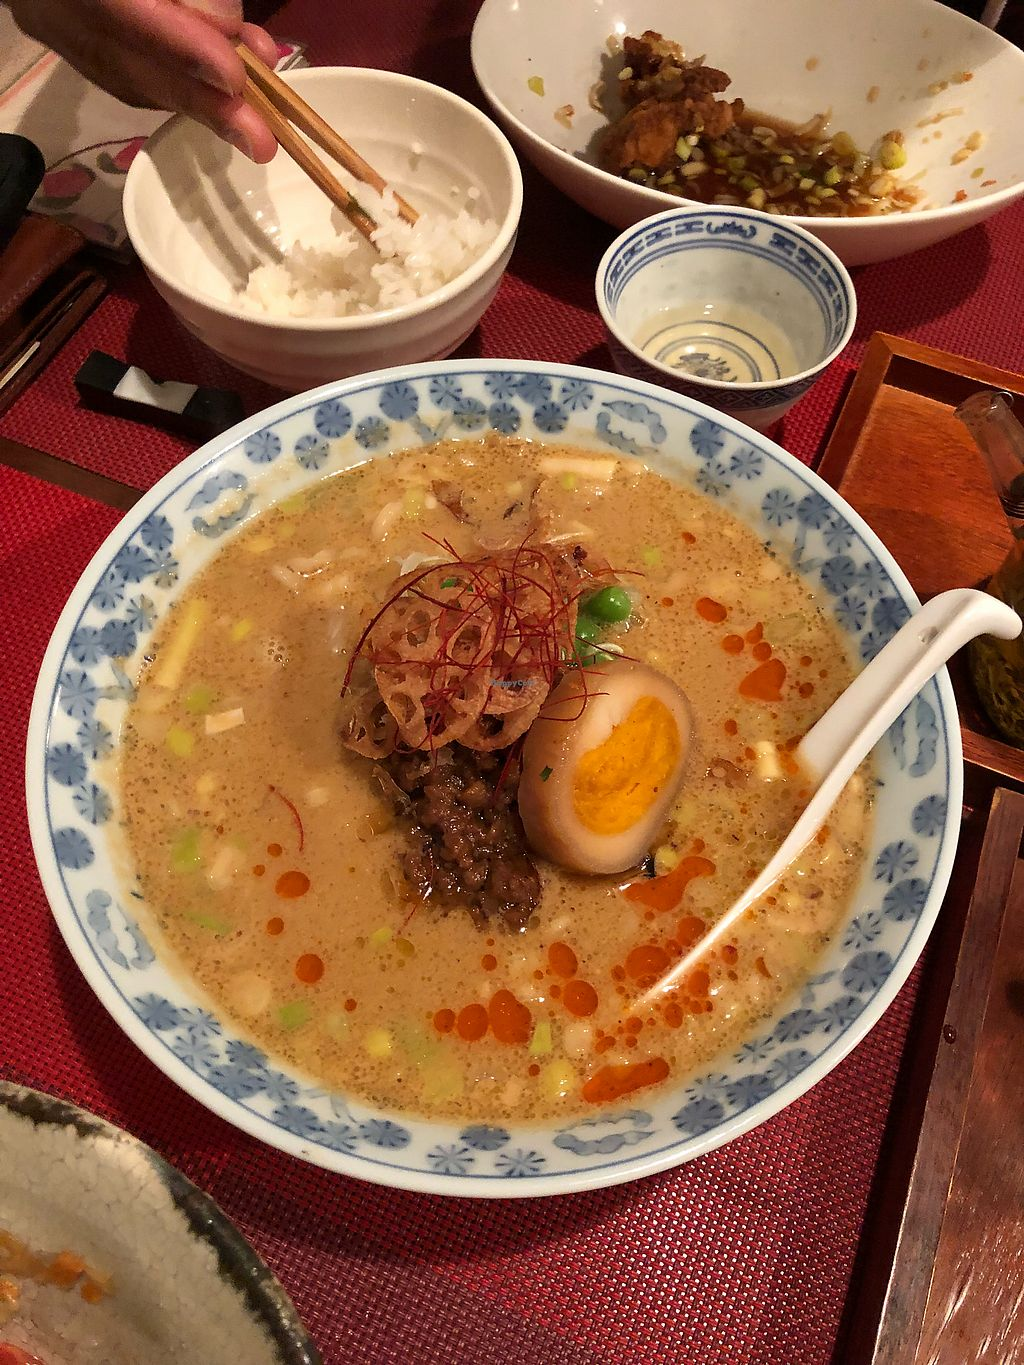 """Photo of Saizencyuka anzu  by <a href=""""/members/profile/HelaniVithanage"""">HelaniVithanage</a> <br/>Tantanmen Ramen and Vegan 'egg' <br/> April 15, 2018  - <a href='/contact/abuse/image/87323/386186'>Report</a>"""